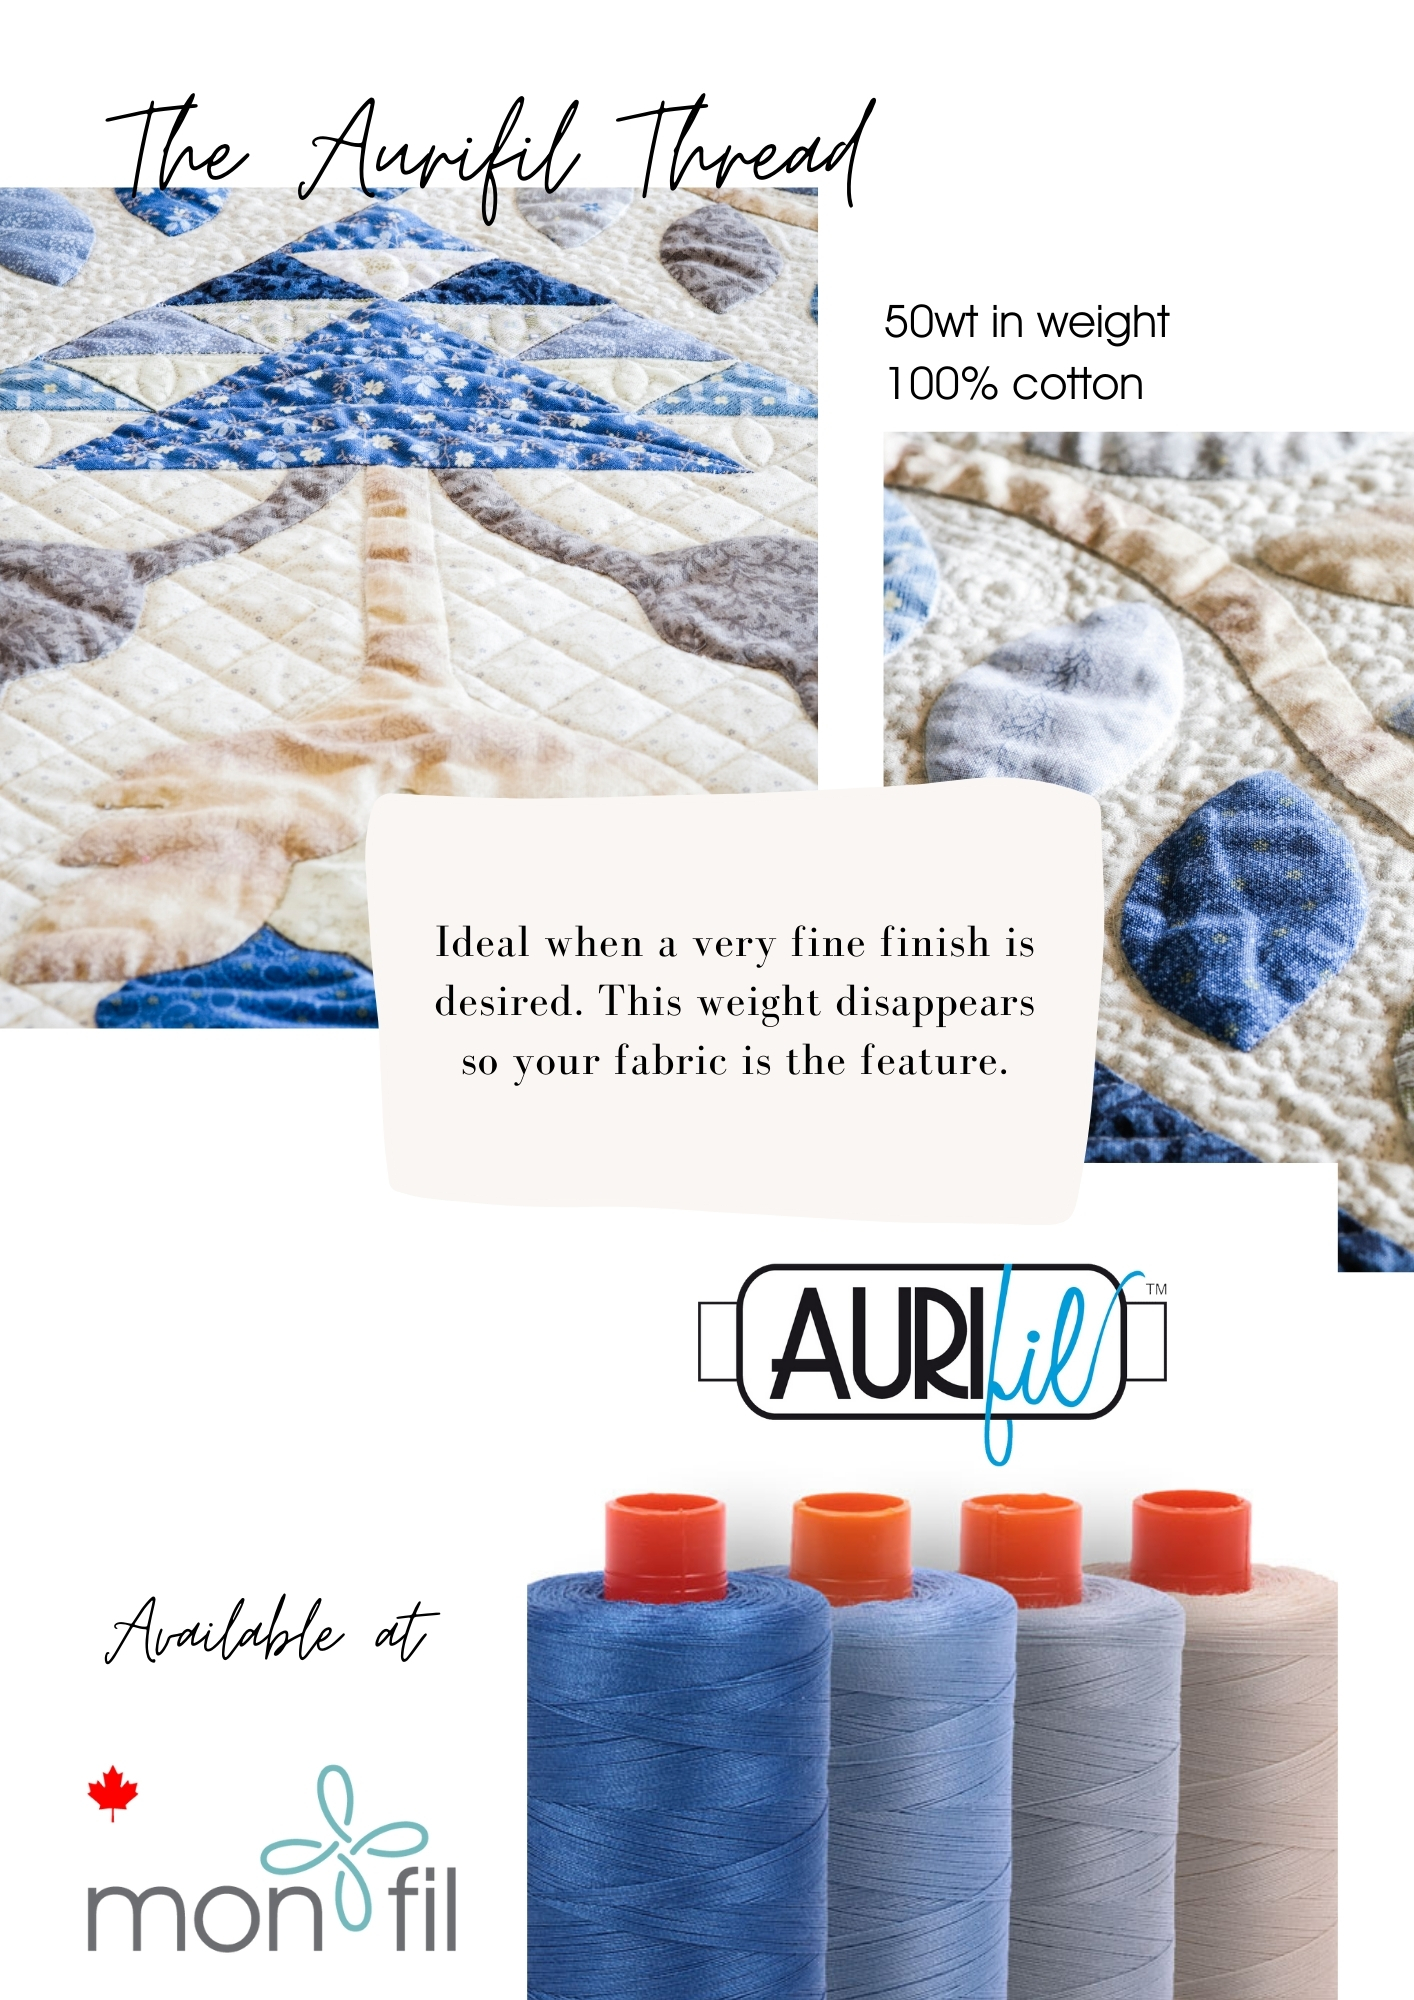 aurifil cotton quilting thread for a very fine finish